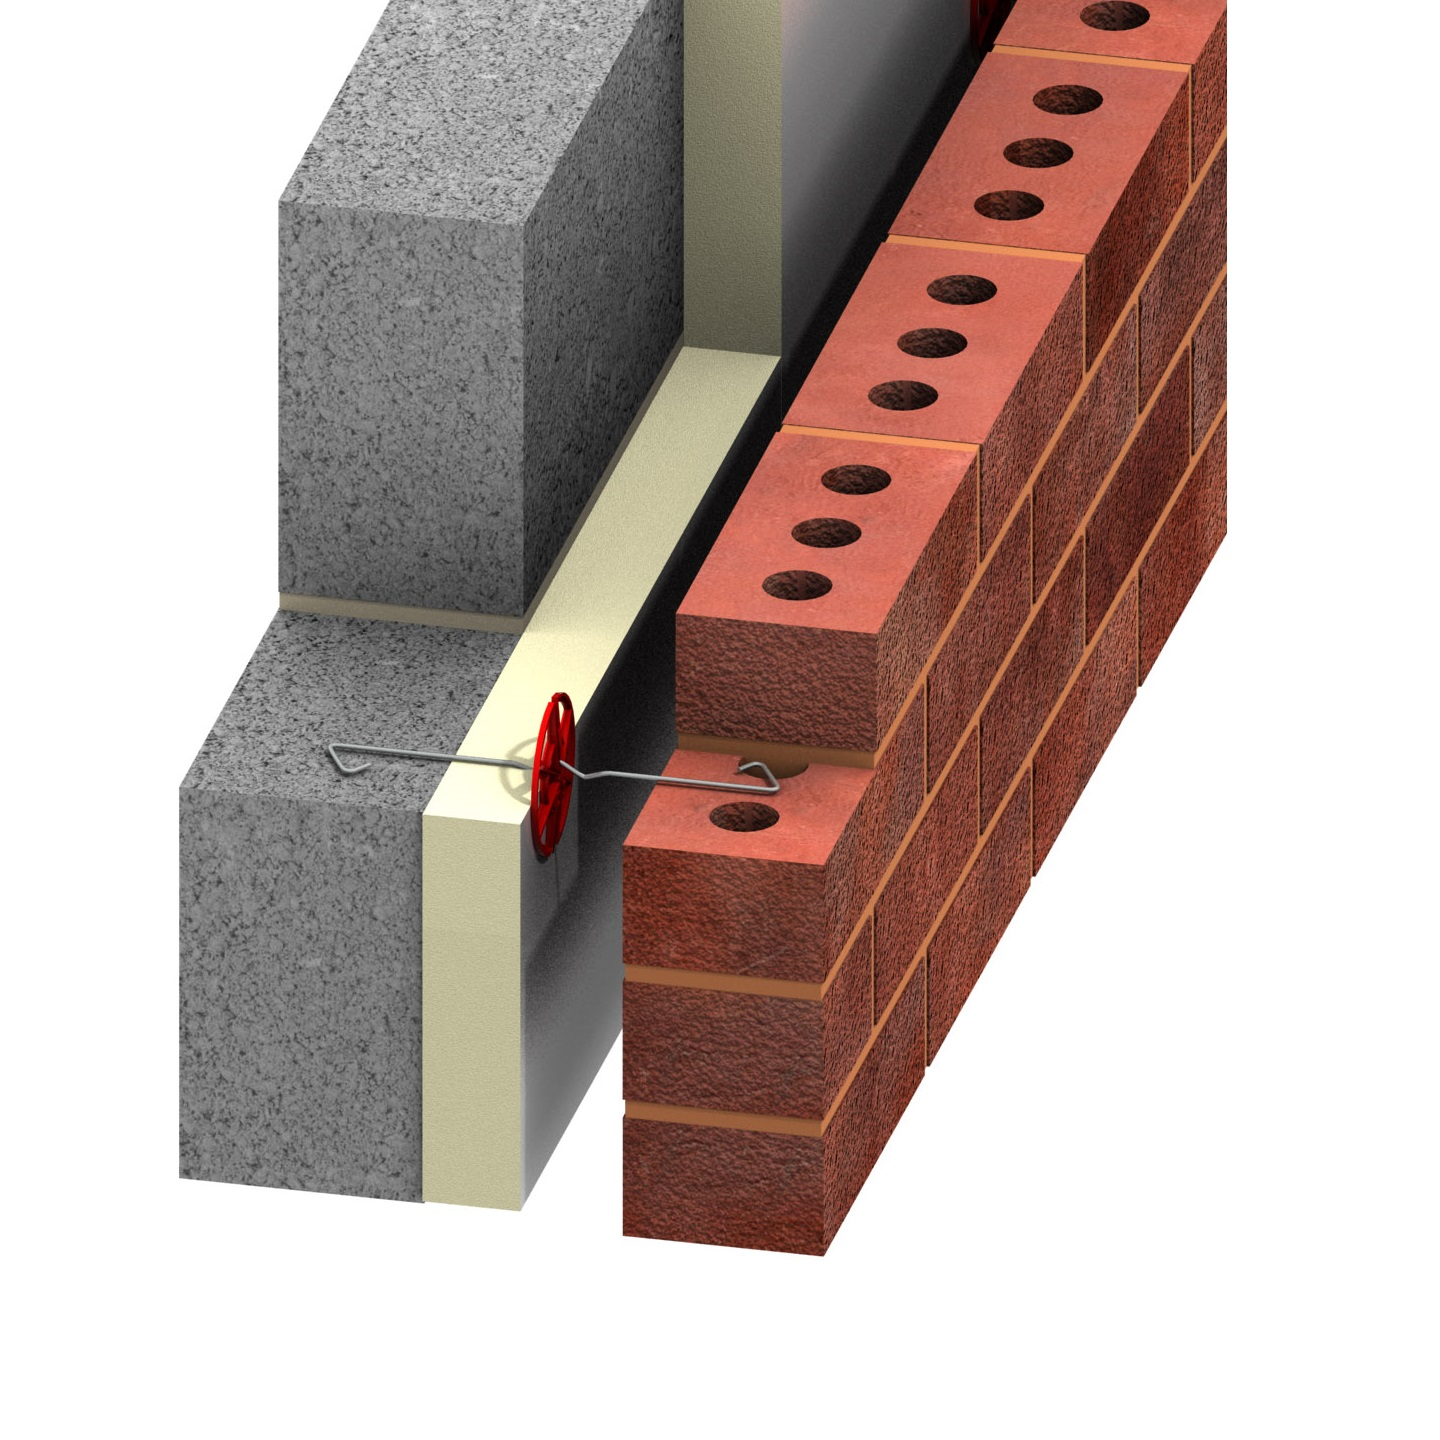 Cavity Wall Insulation Get Energy Efficient Insulation